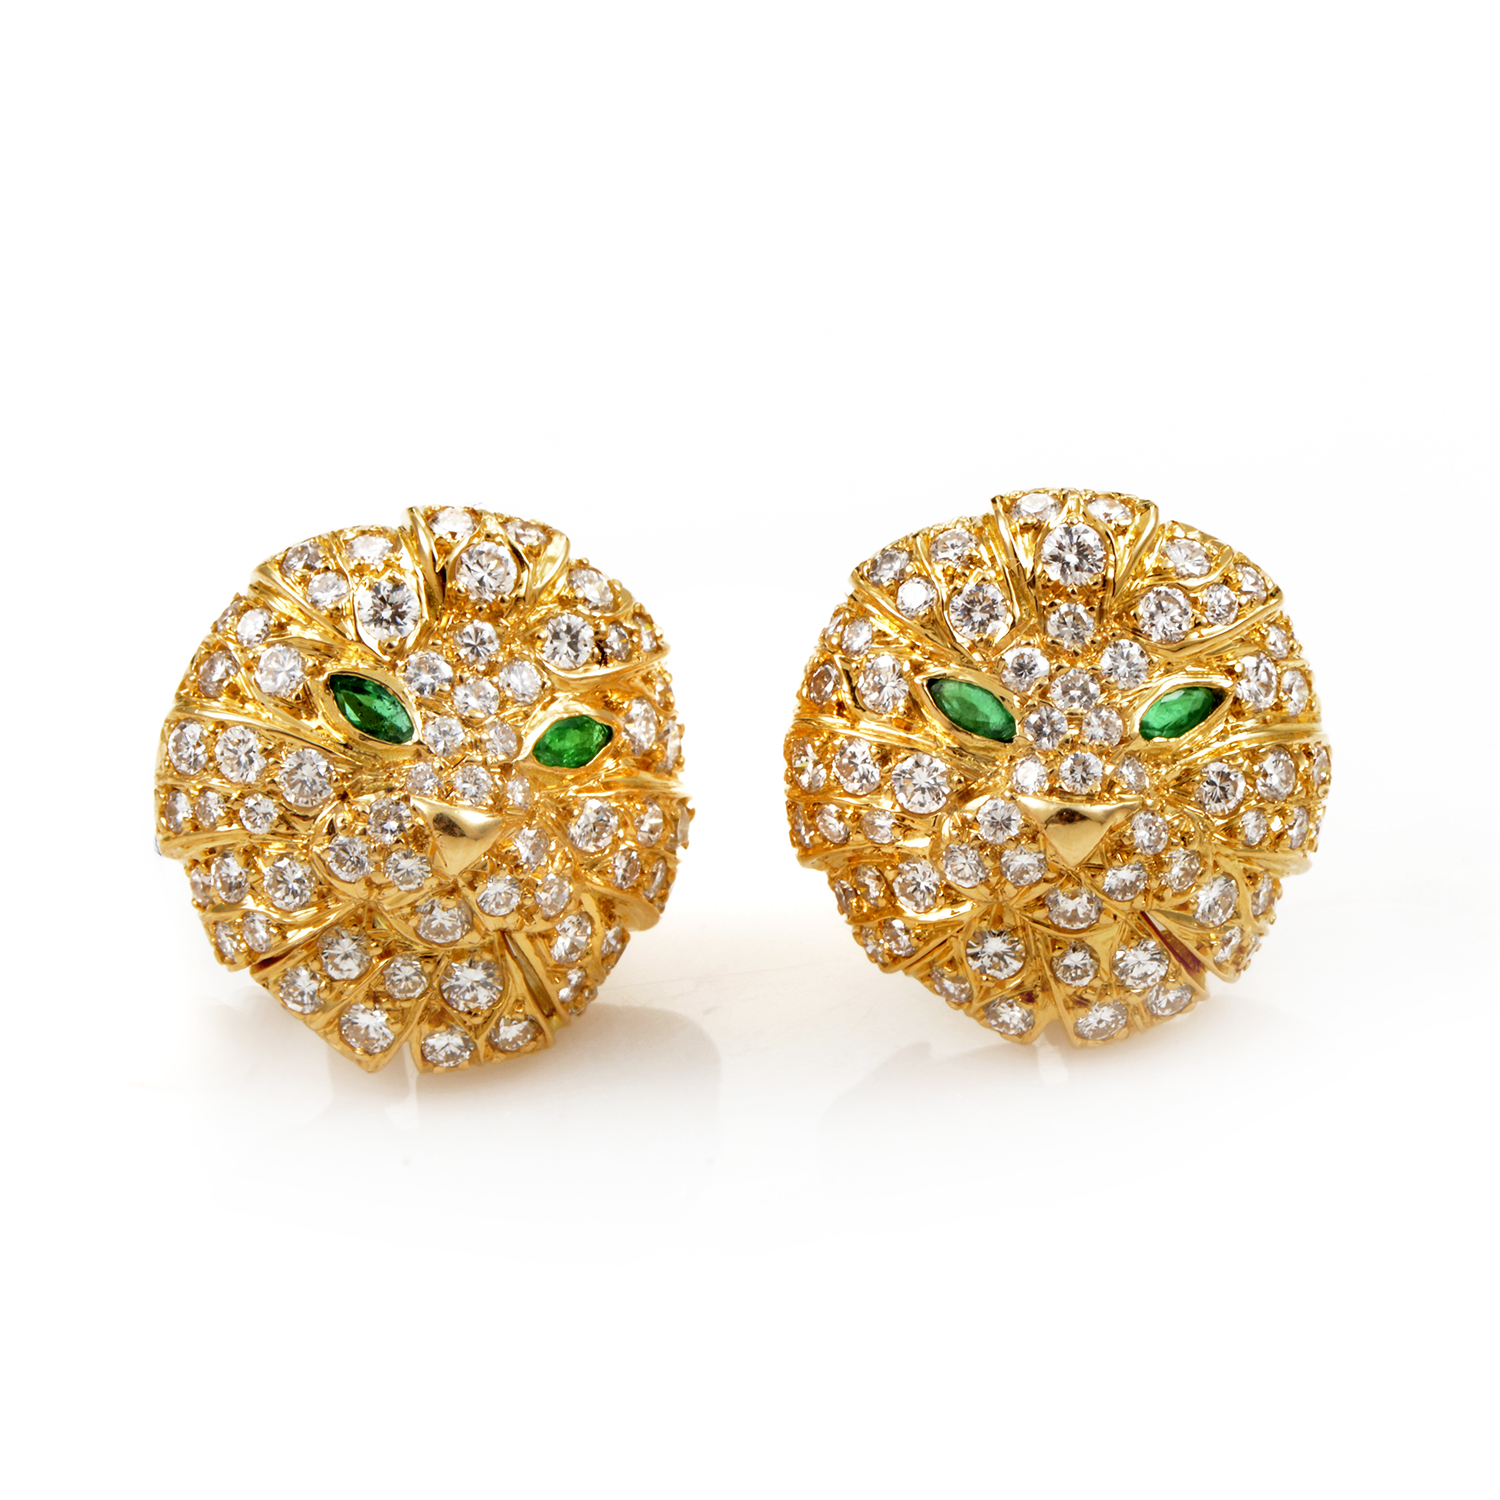 Boucheron 18K Yellow Gold Diamond Pave and Emerald Lion Clip-On Earrings